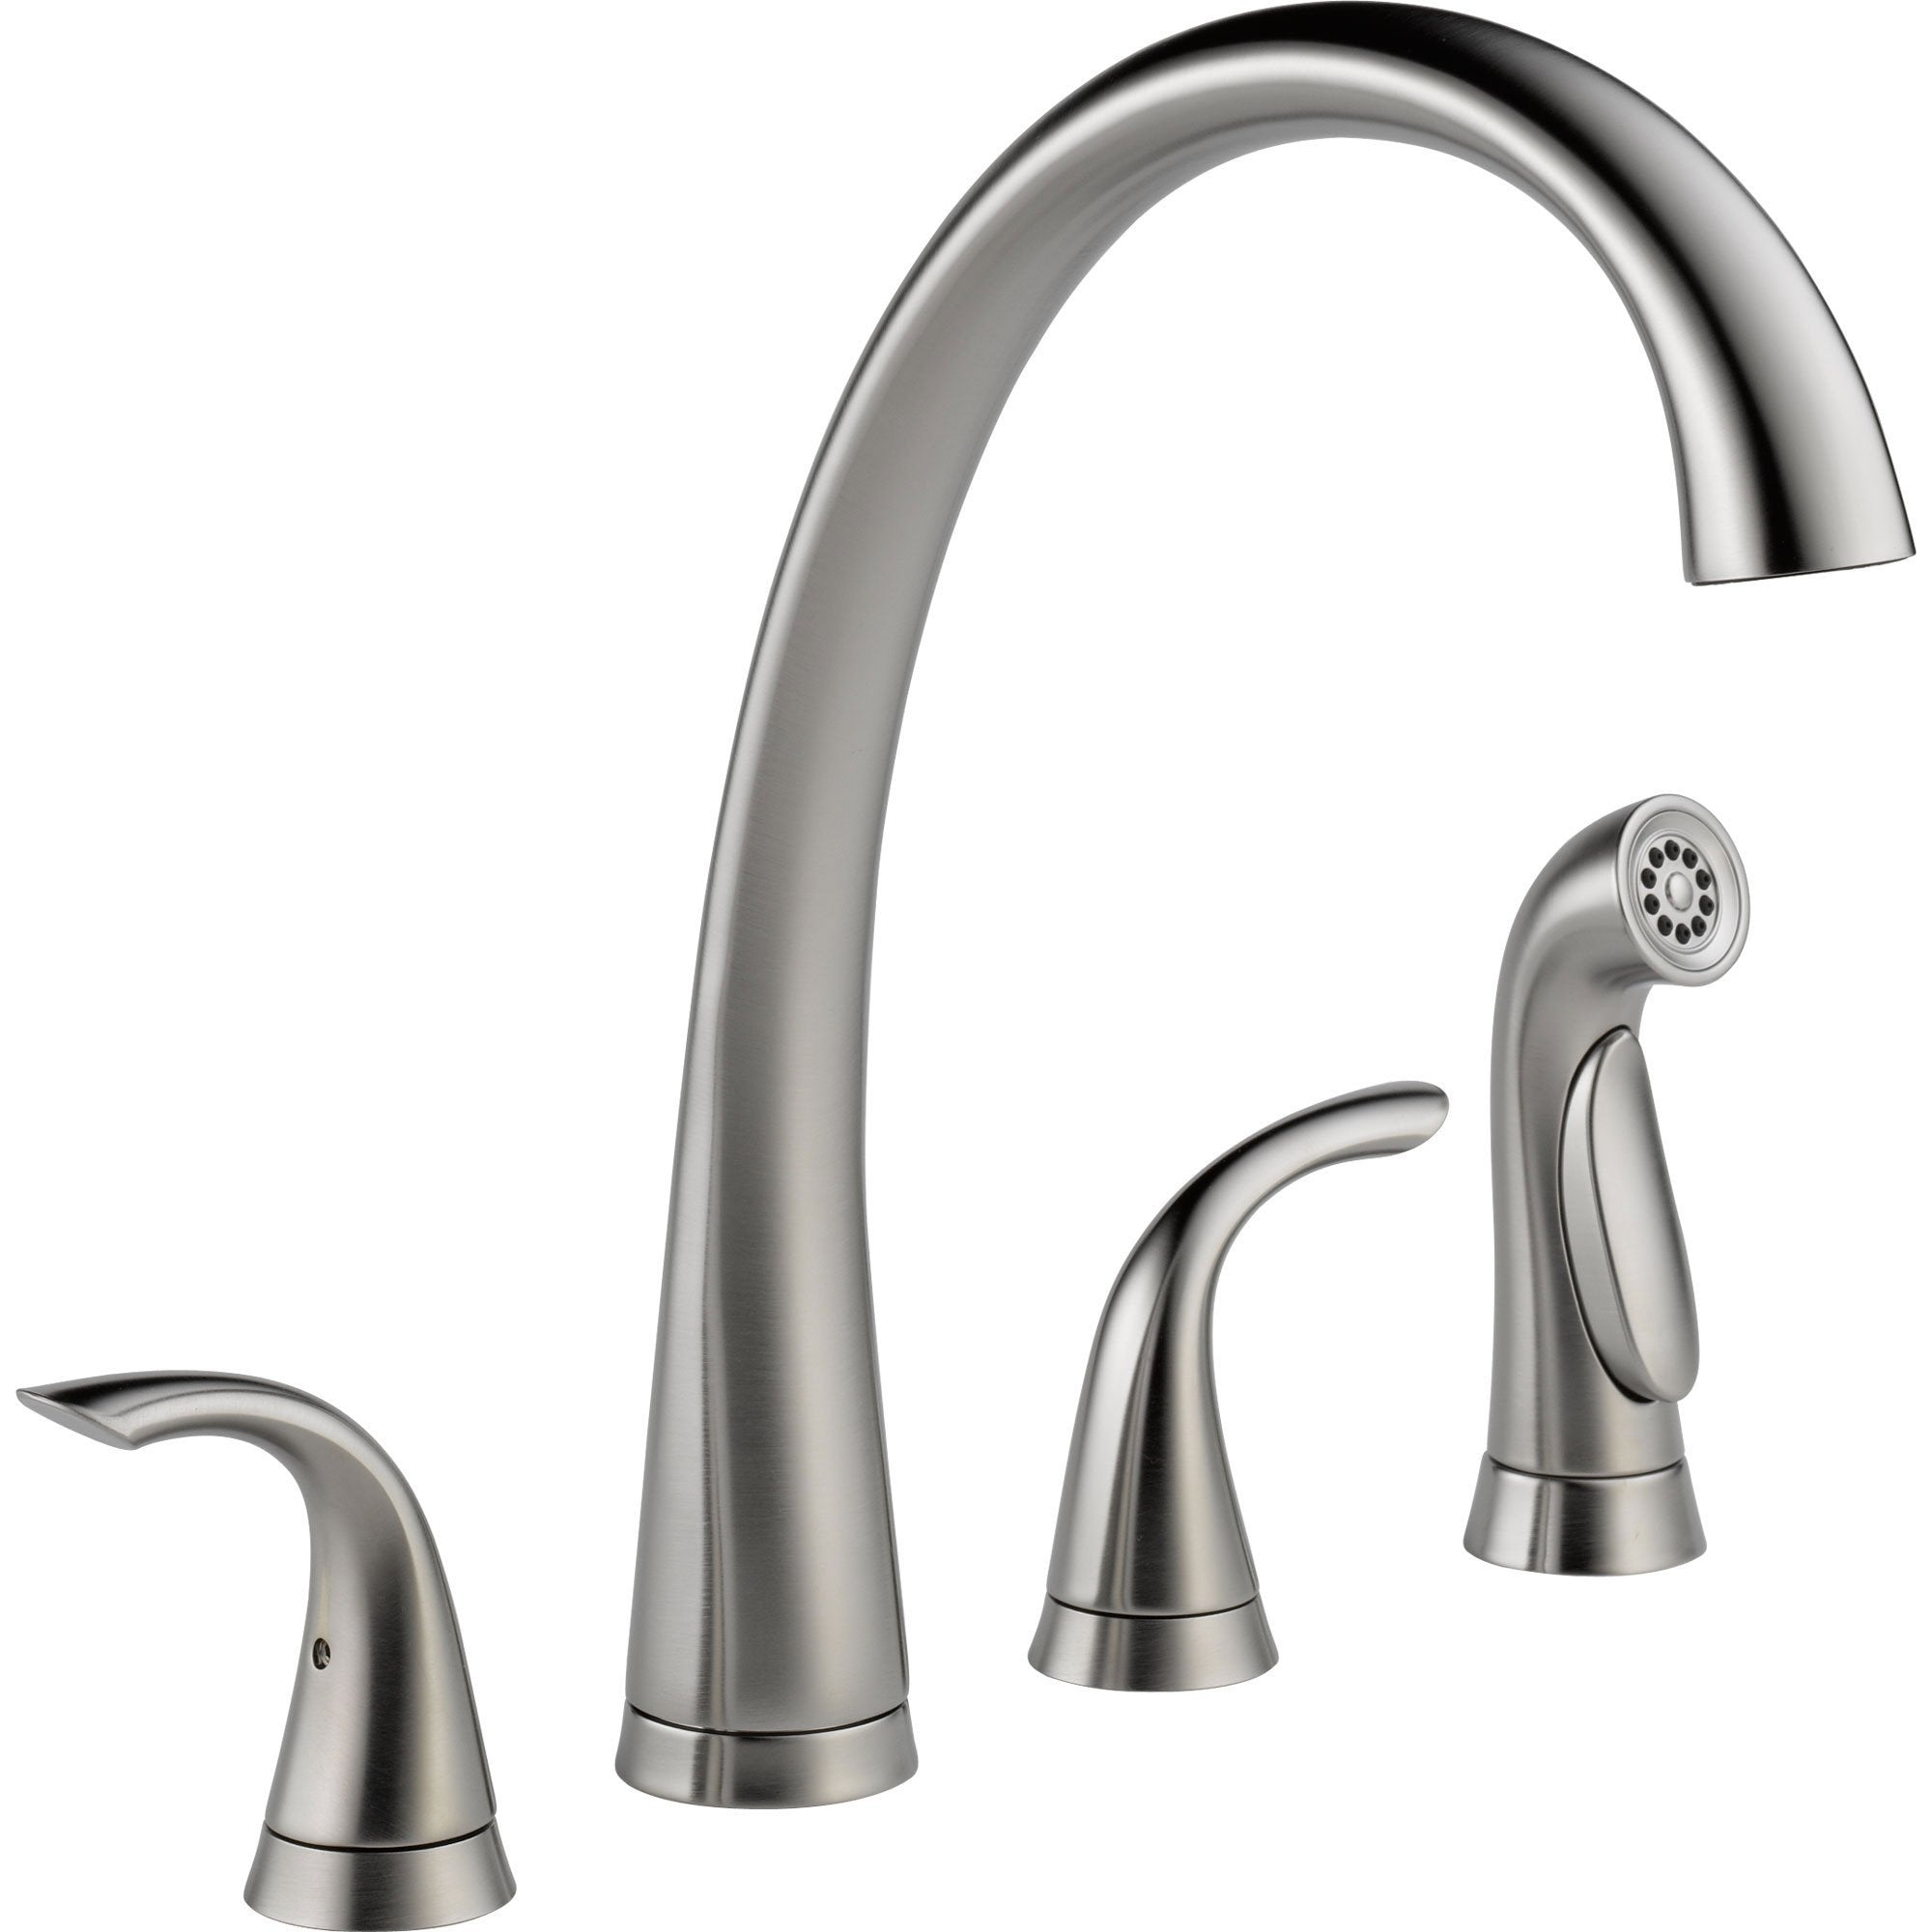 Delta Arctic Stainless High Arch Spout Widespread Kitchen Faucet w/ Spray 555816